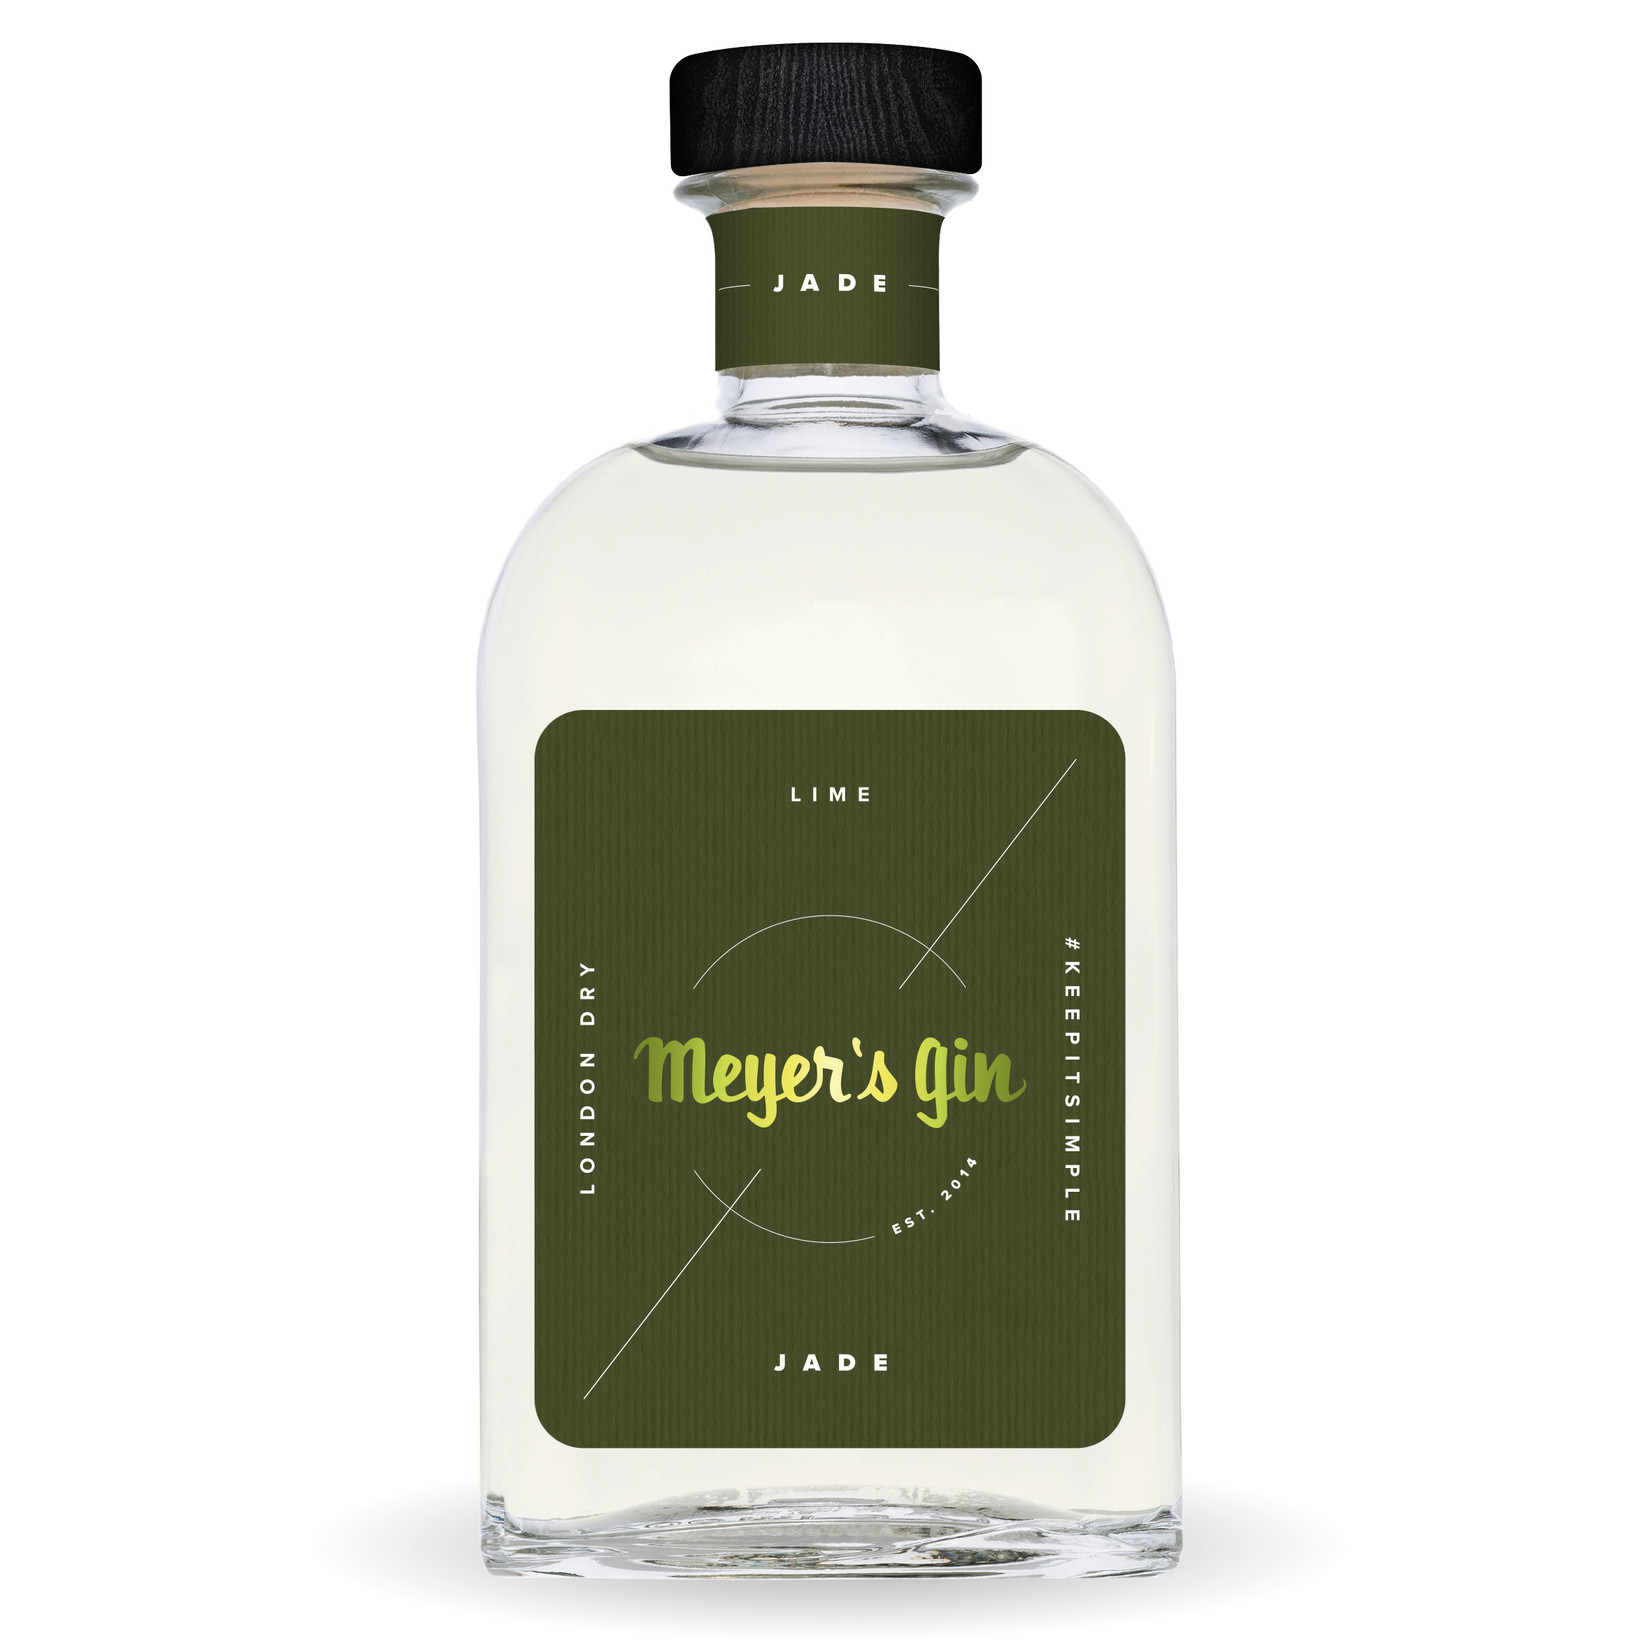 Meyer's ging jade 38% 50 cl